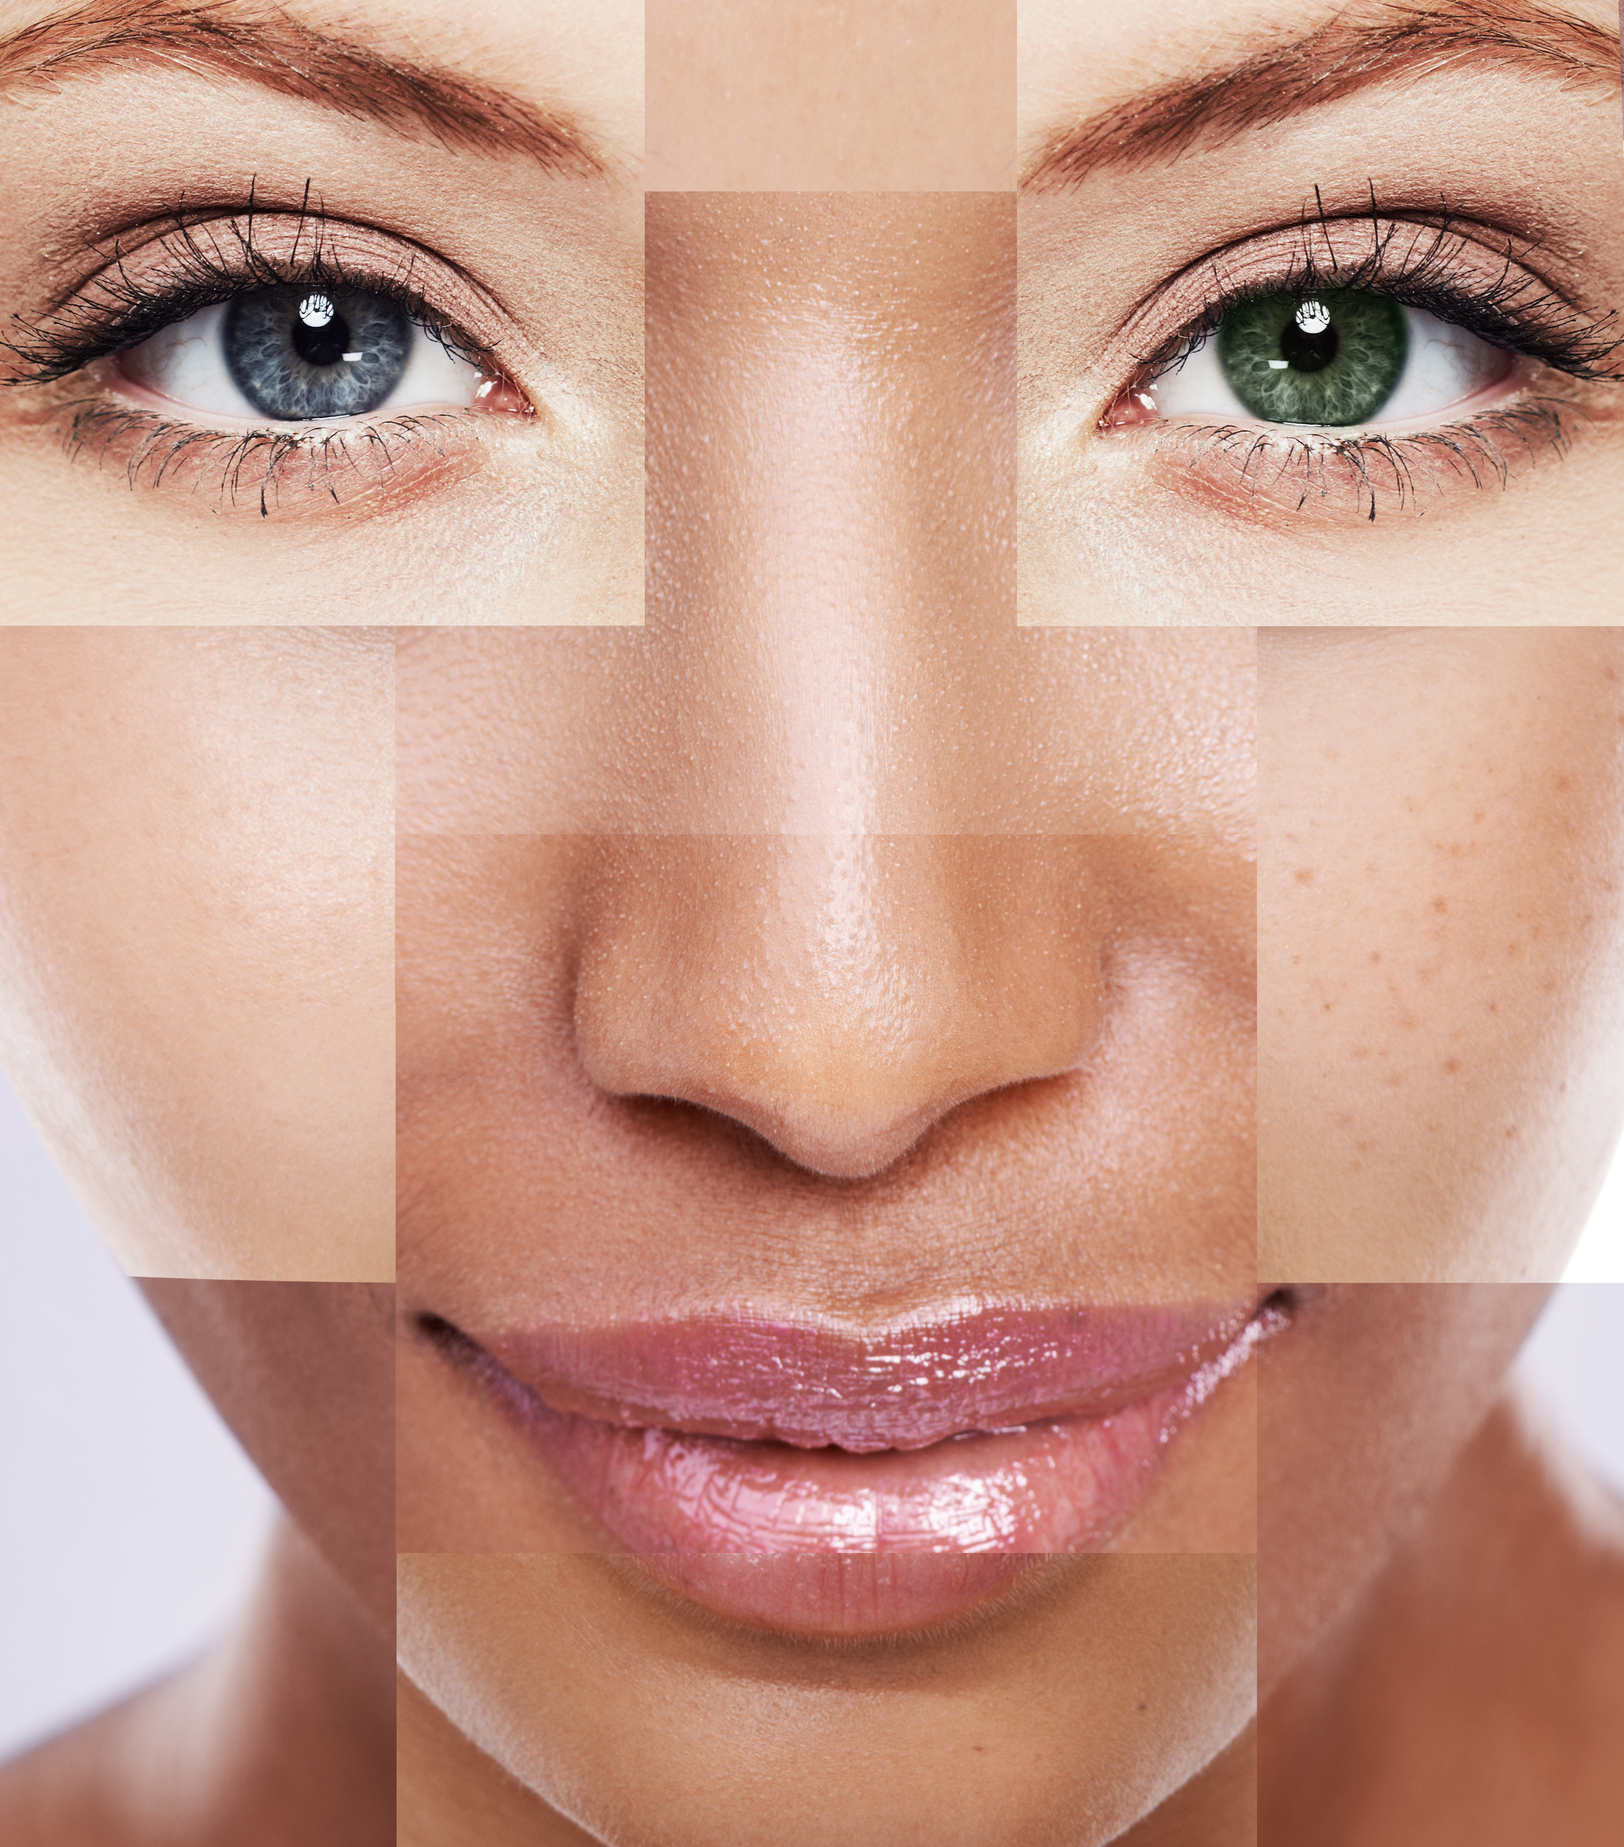 - We offer a variety of Clinical Skincare lines to suit your specific need and skin condition. Once a consultation and skin analysis is performed we can recommend an at-home regimen. Call us at 404-496-4091 or click on the link below to schedule a consultation. All consultations are complementary.